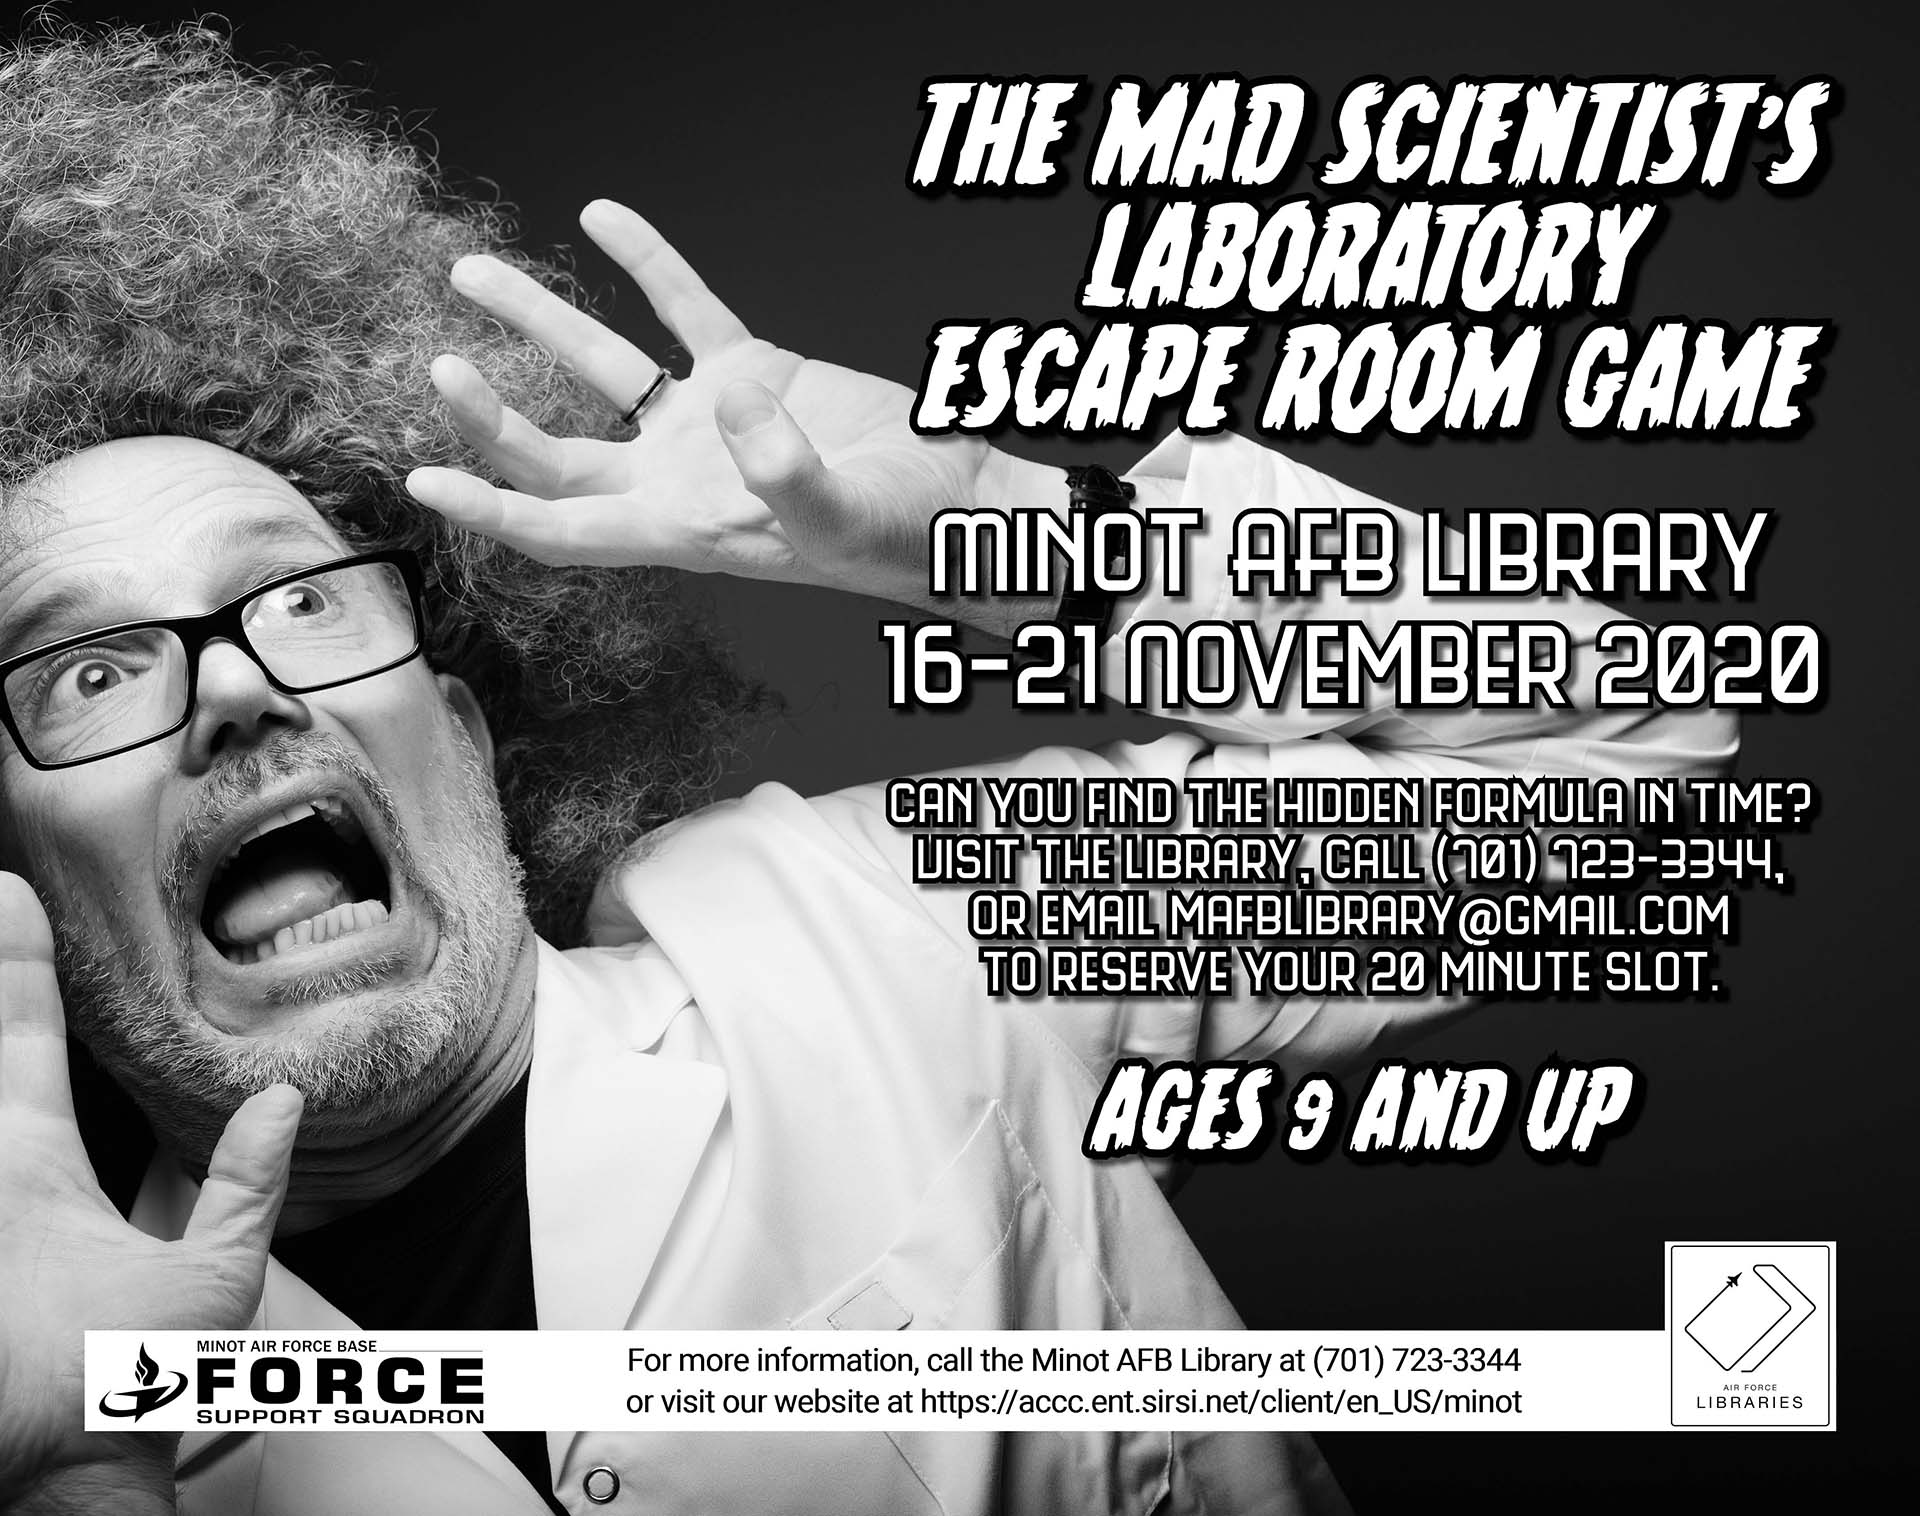 Escape Room Game: The Mad Scientist's Laboratory